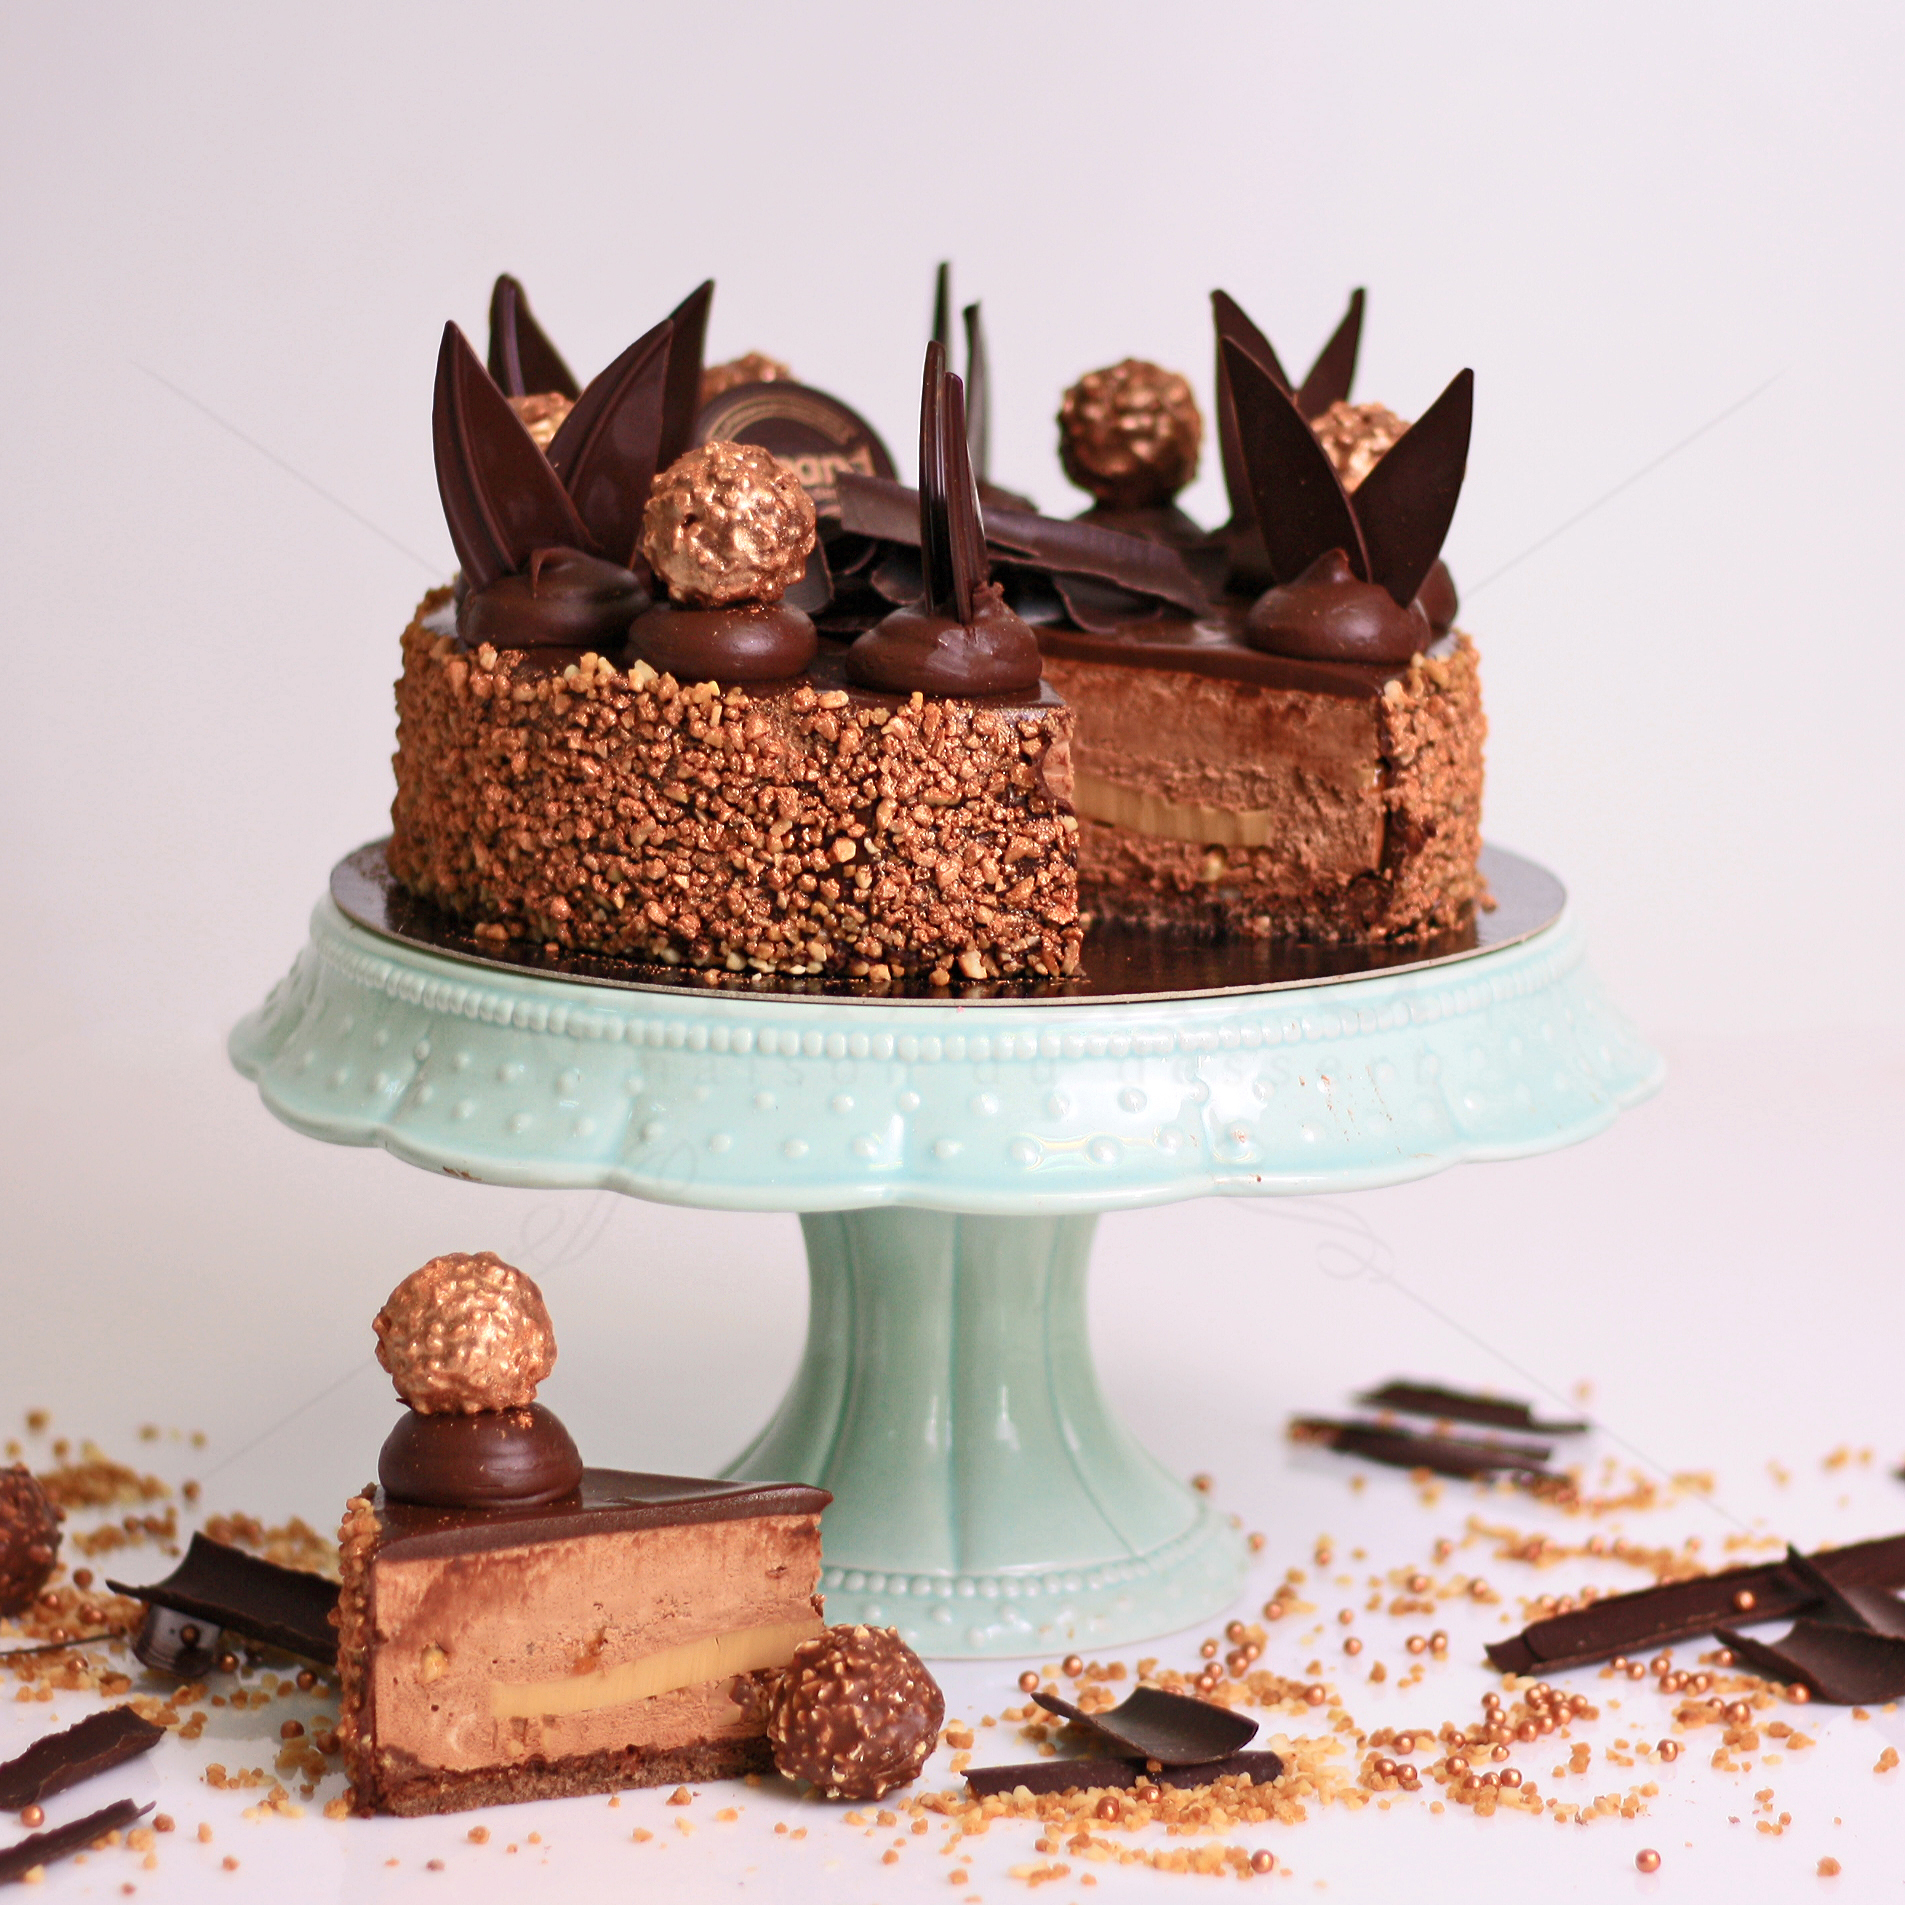 Tort whisky and hazelnuts